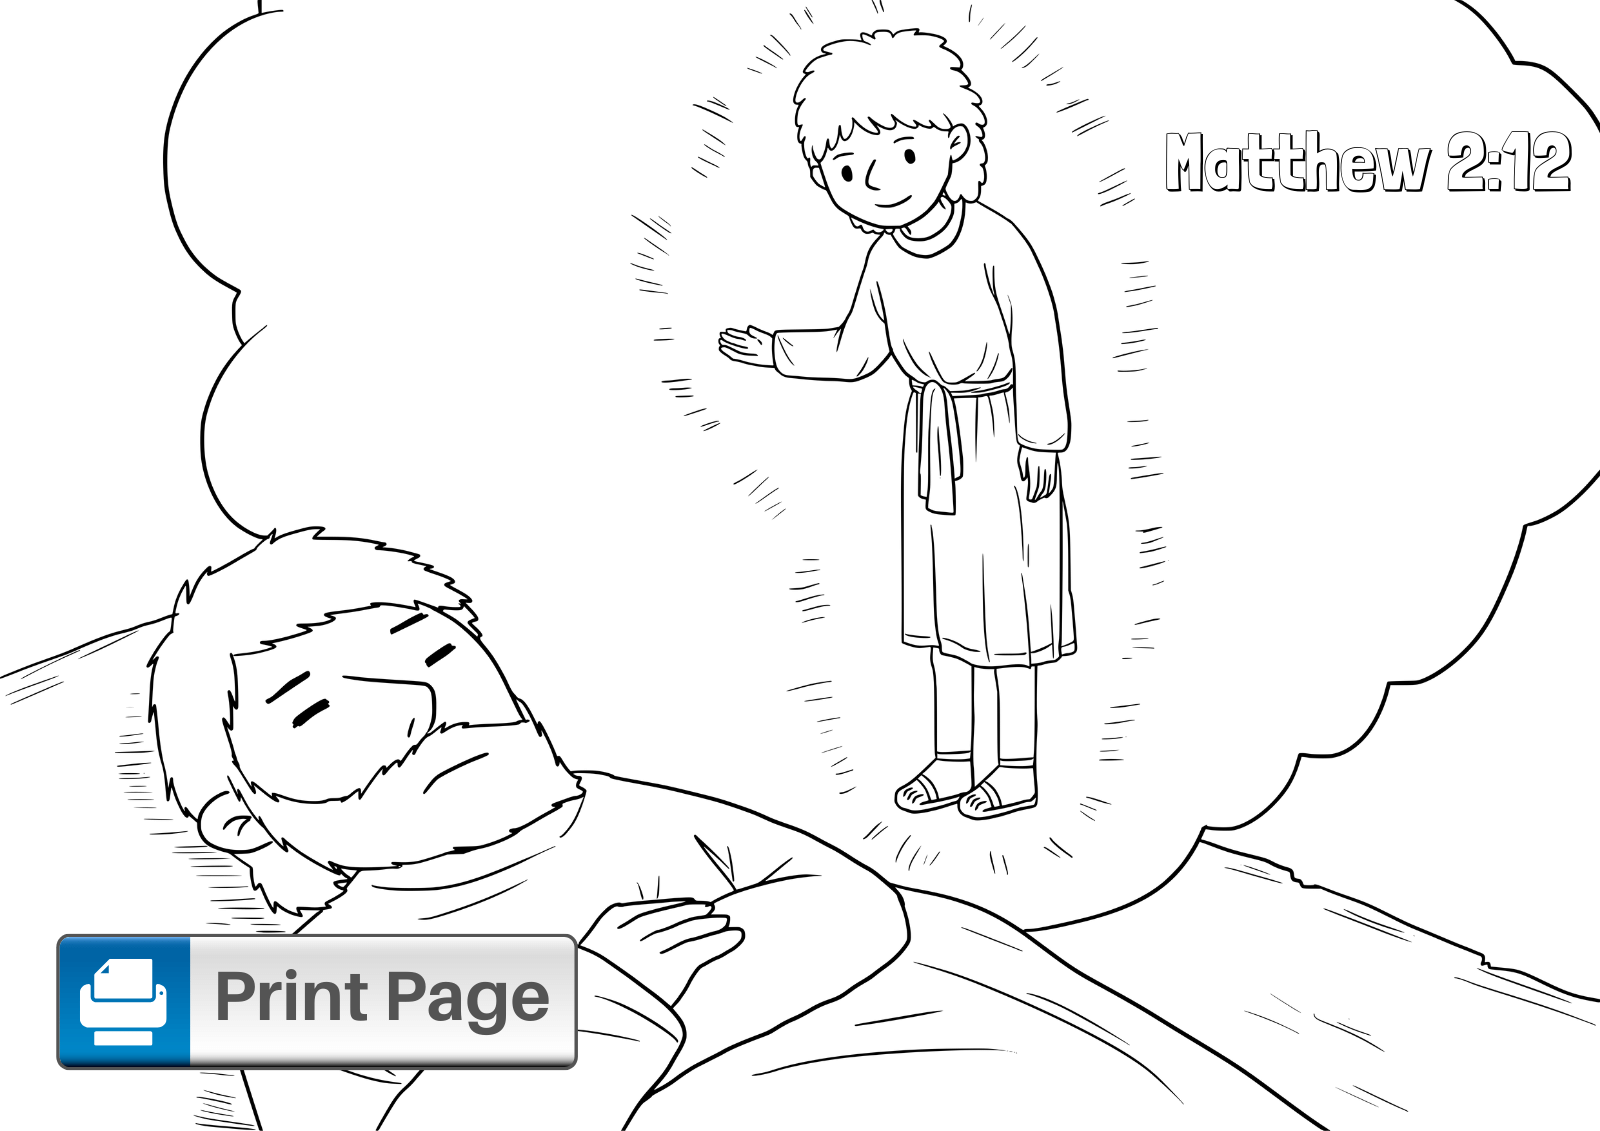 Free Three Wise Men Coloring Pages for Kids (Printable